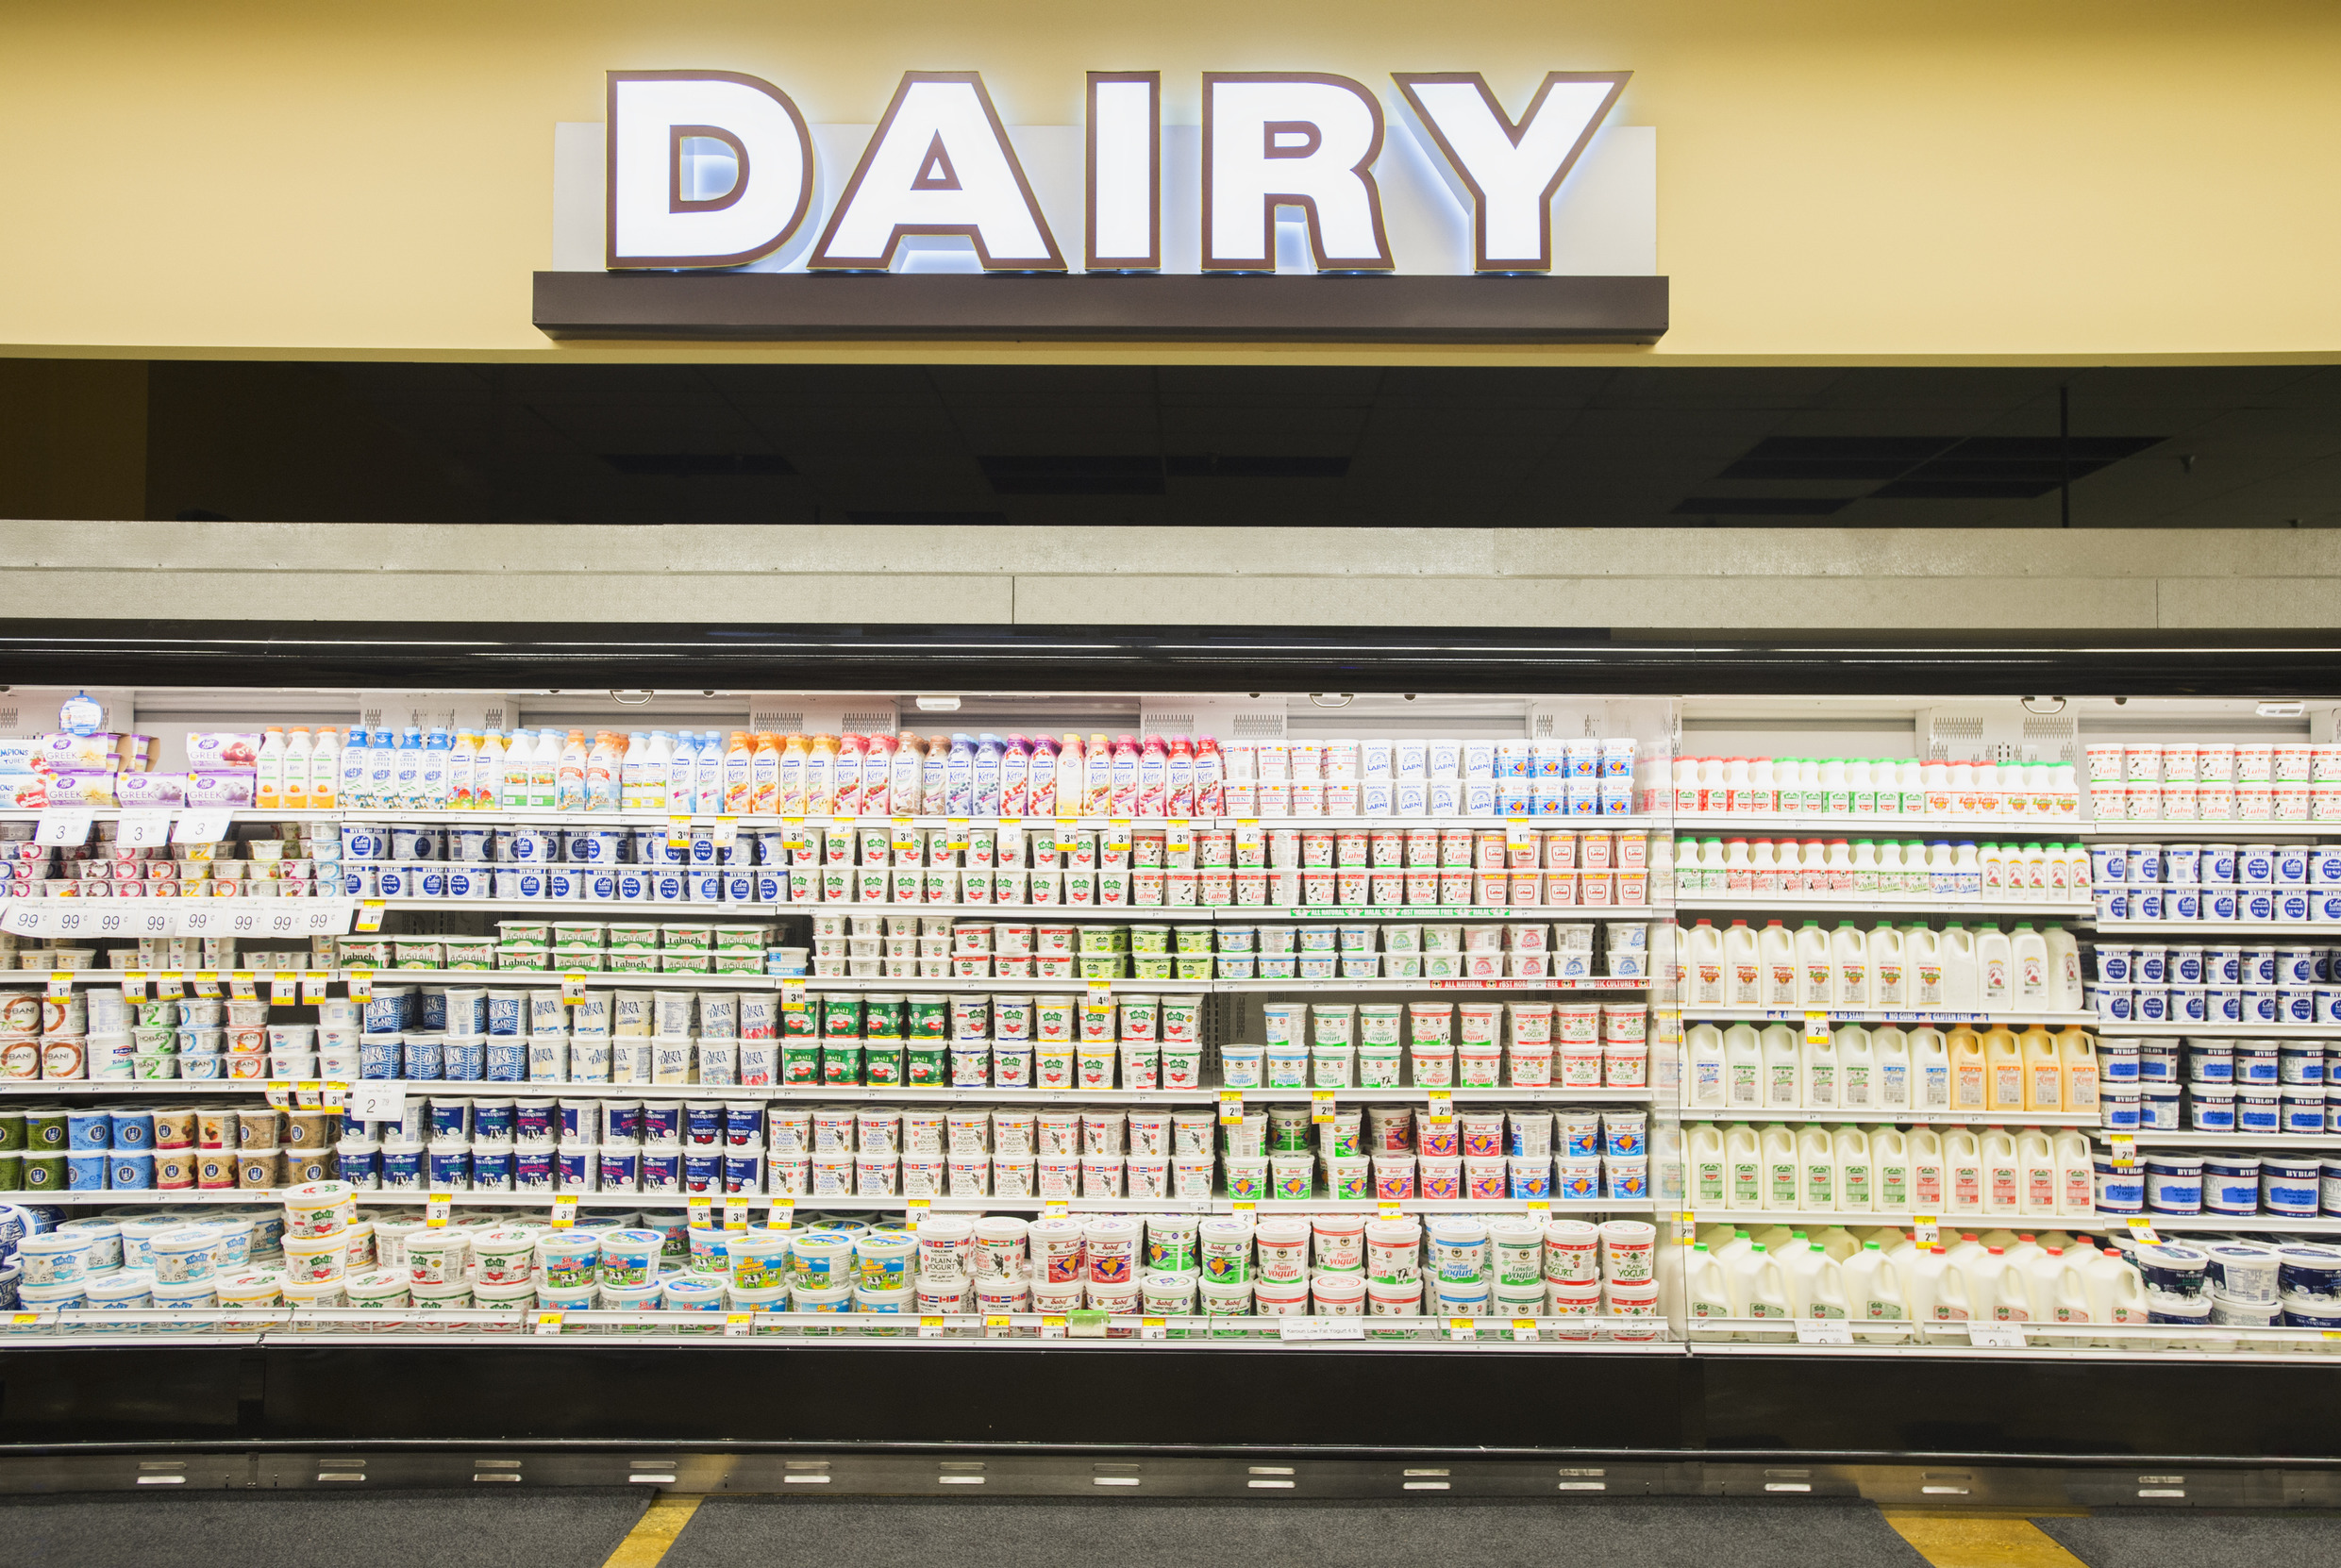 5 Disturbing Facts The Dairy Industry Doesn't Want You to Know